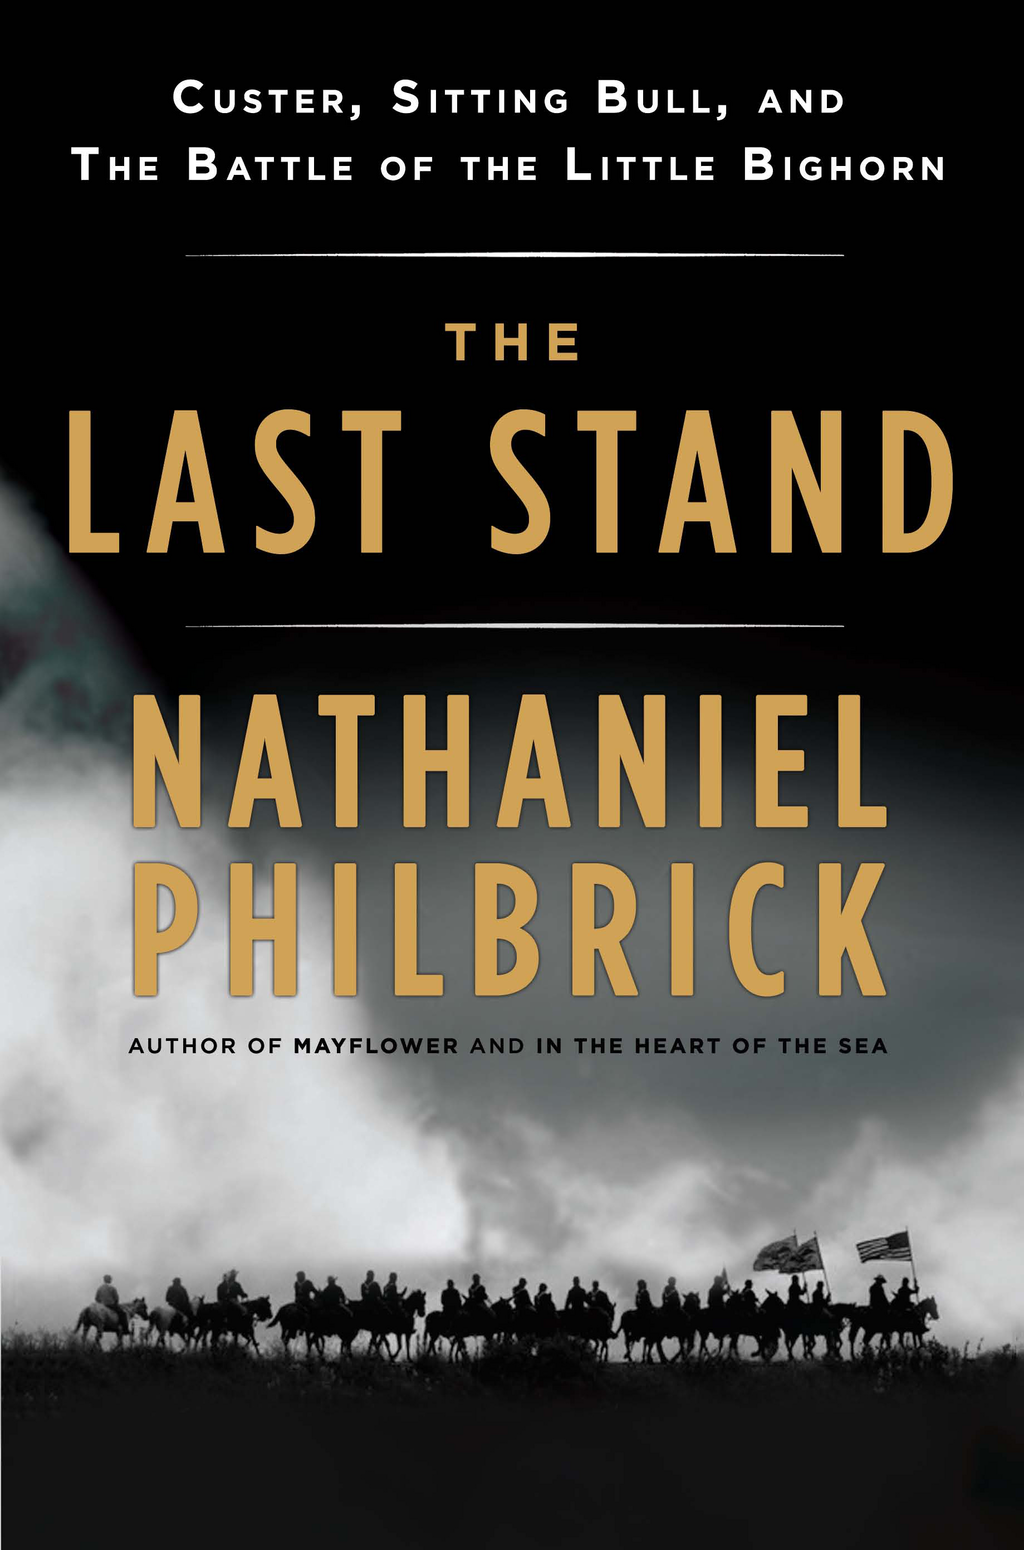 The Last Stand: Custer, Sitting Bull, and the Battle of the Little Bighorn By: Nathaniel Philbrick